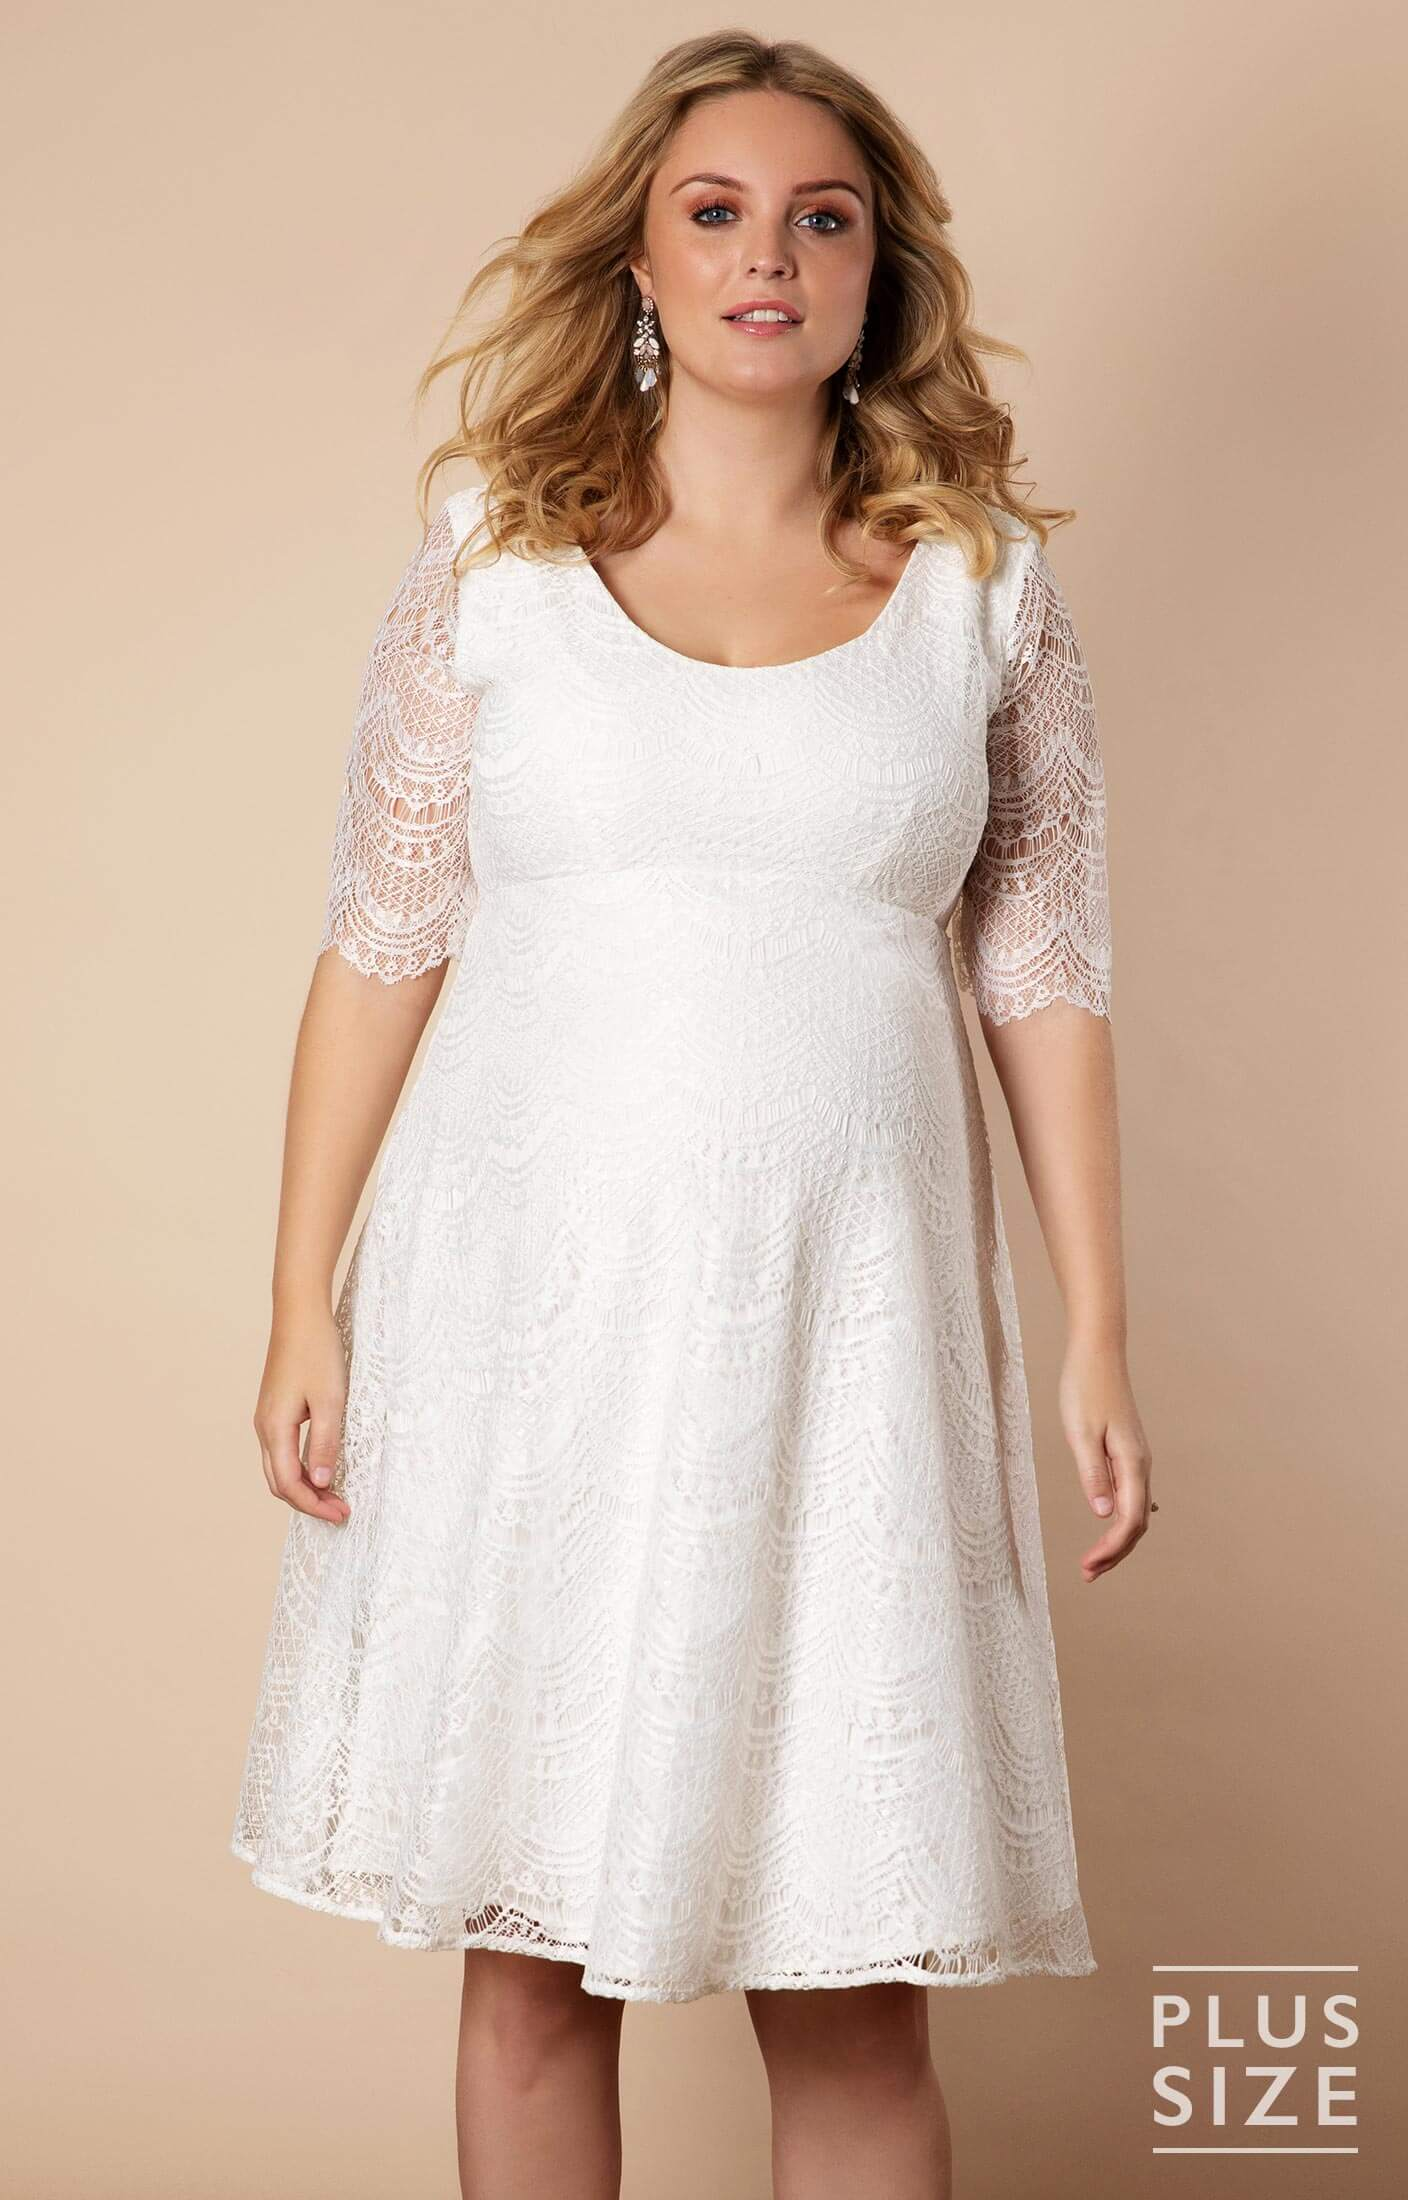 Verona Plus Size Maternity Wedding Dress Short Bright Ivory ...